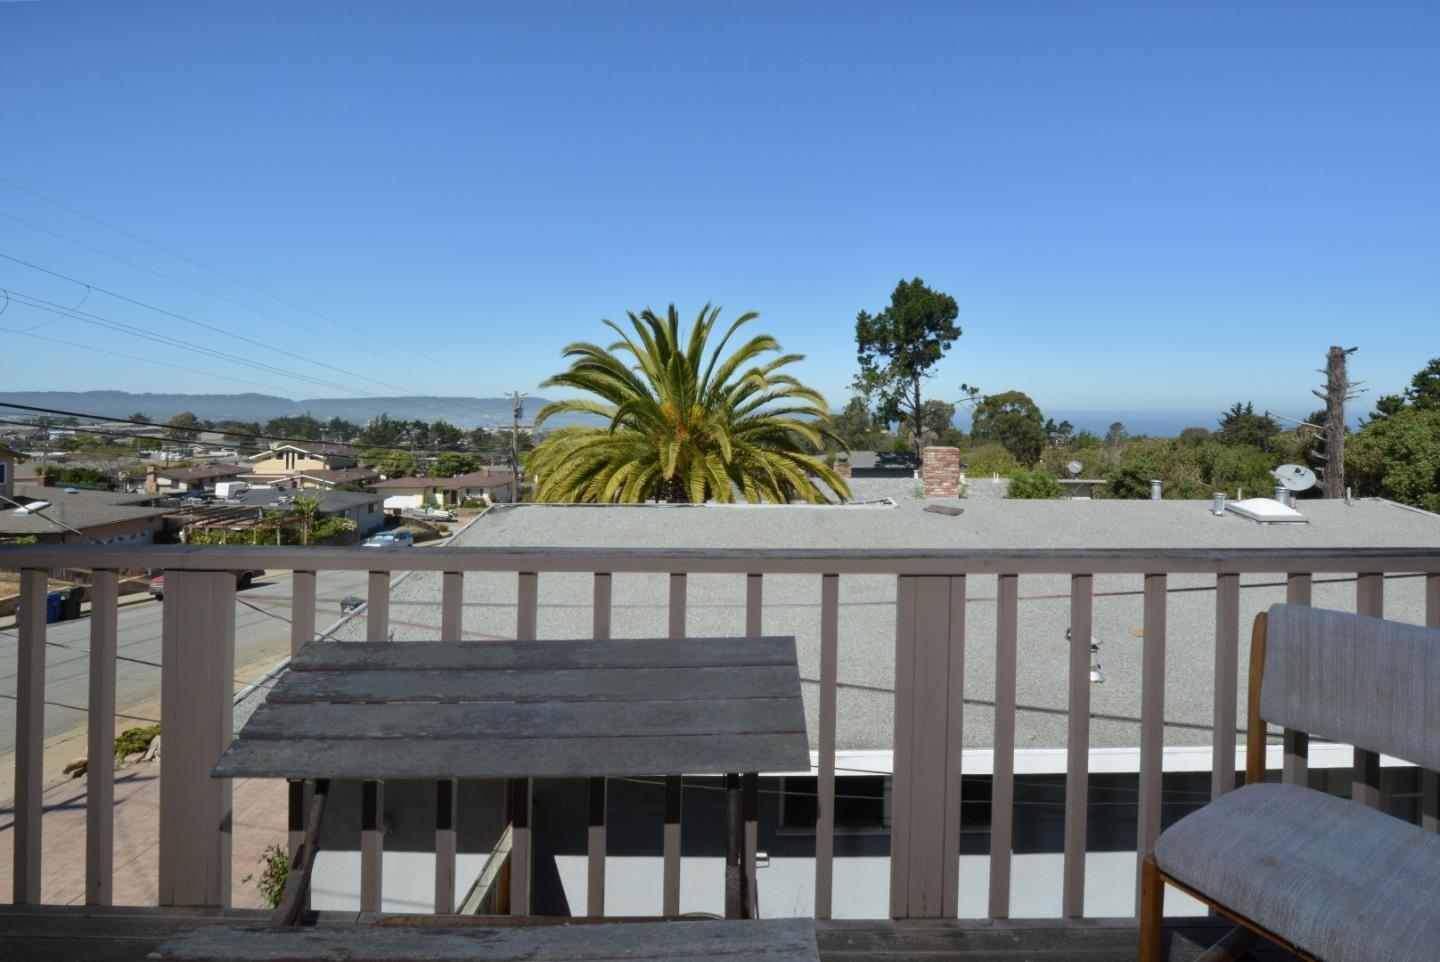 Additional photo for property listing at 1975 Military Avenue  Seaside, California 93955 Estados Unidos